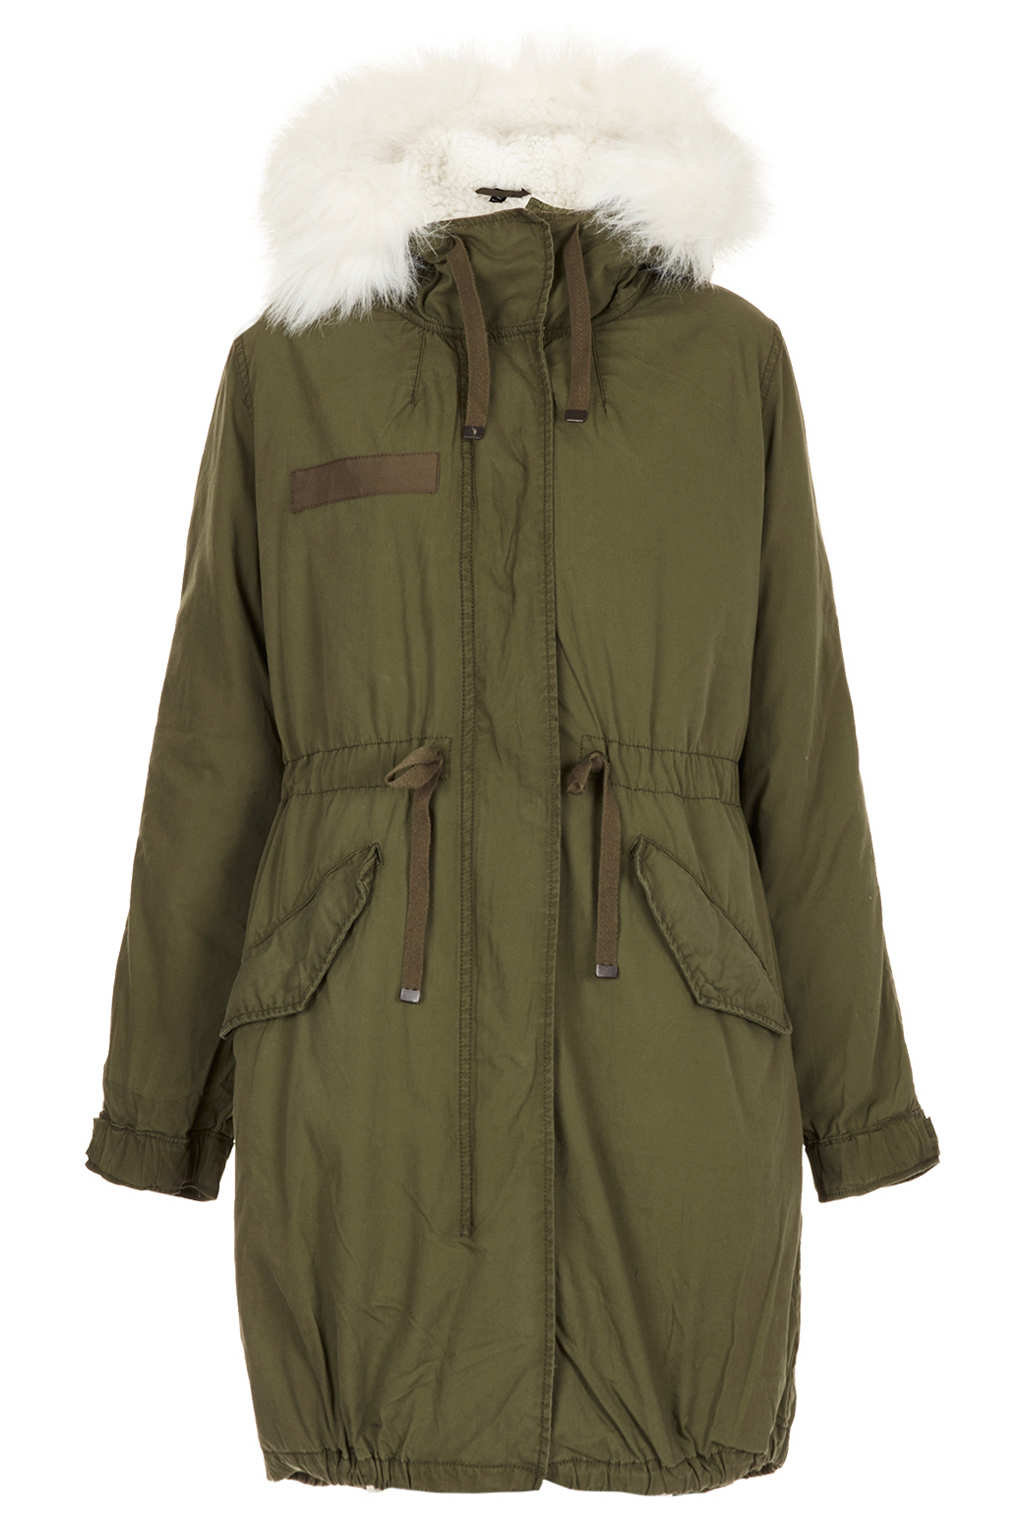 Topshop Tall Khaki Parka Coat in Green | Lyst